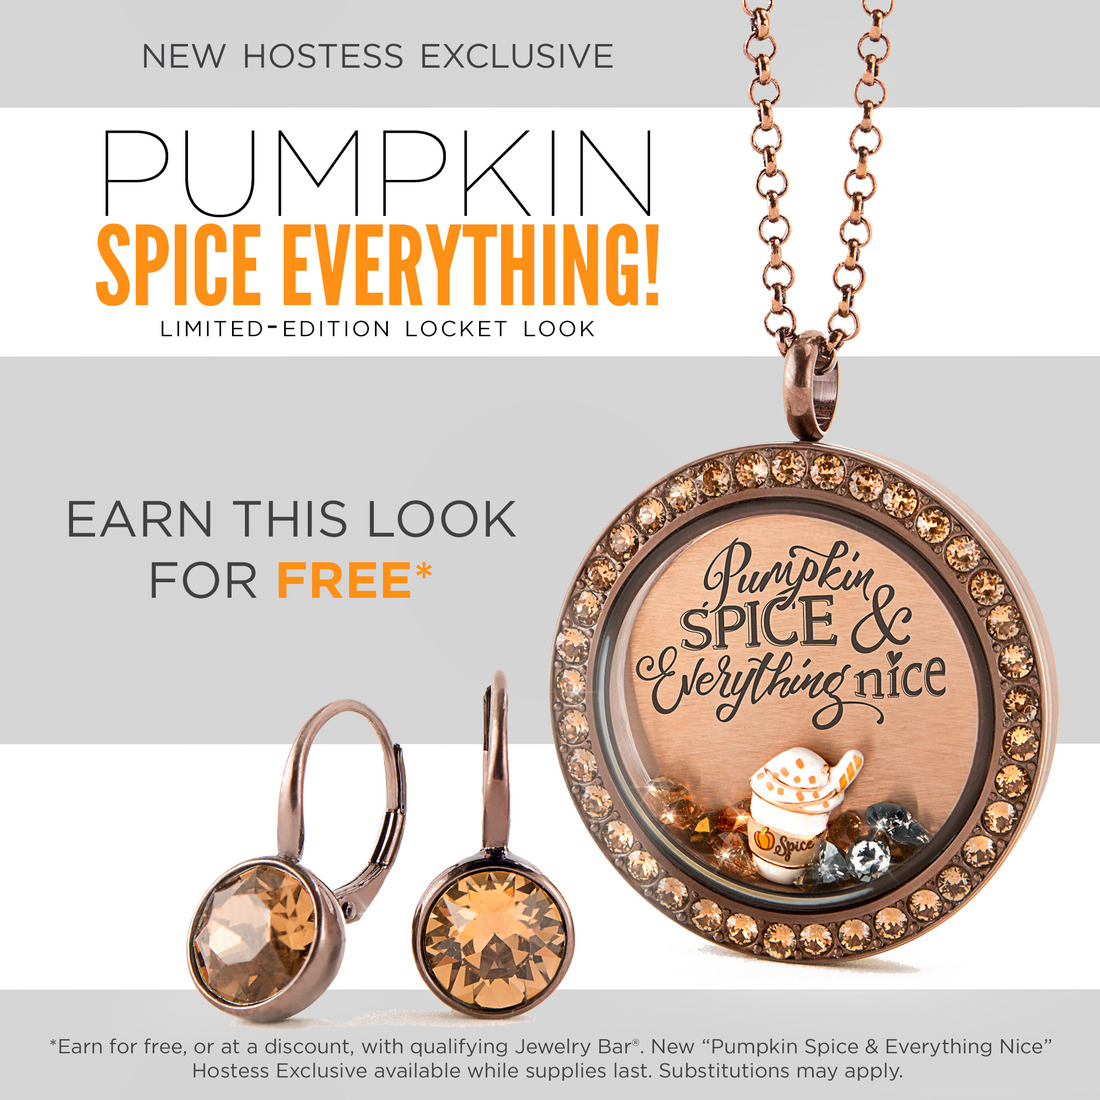 ORIGAMI OWL ROSE GOLD OVAL WISH LOCKET | eBay | 1100x1100